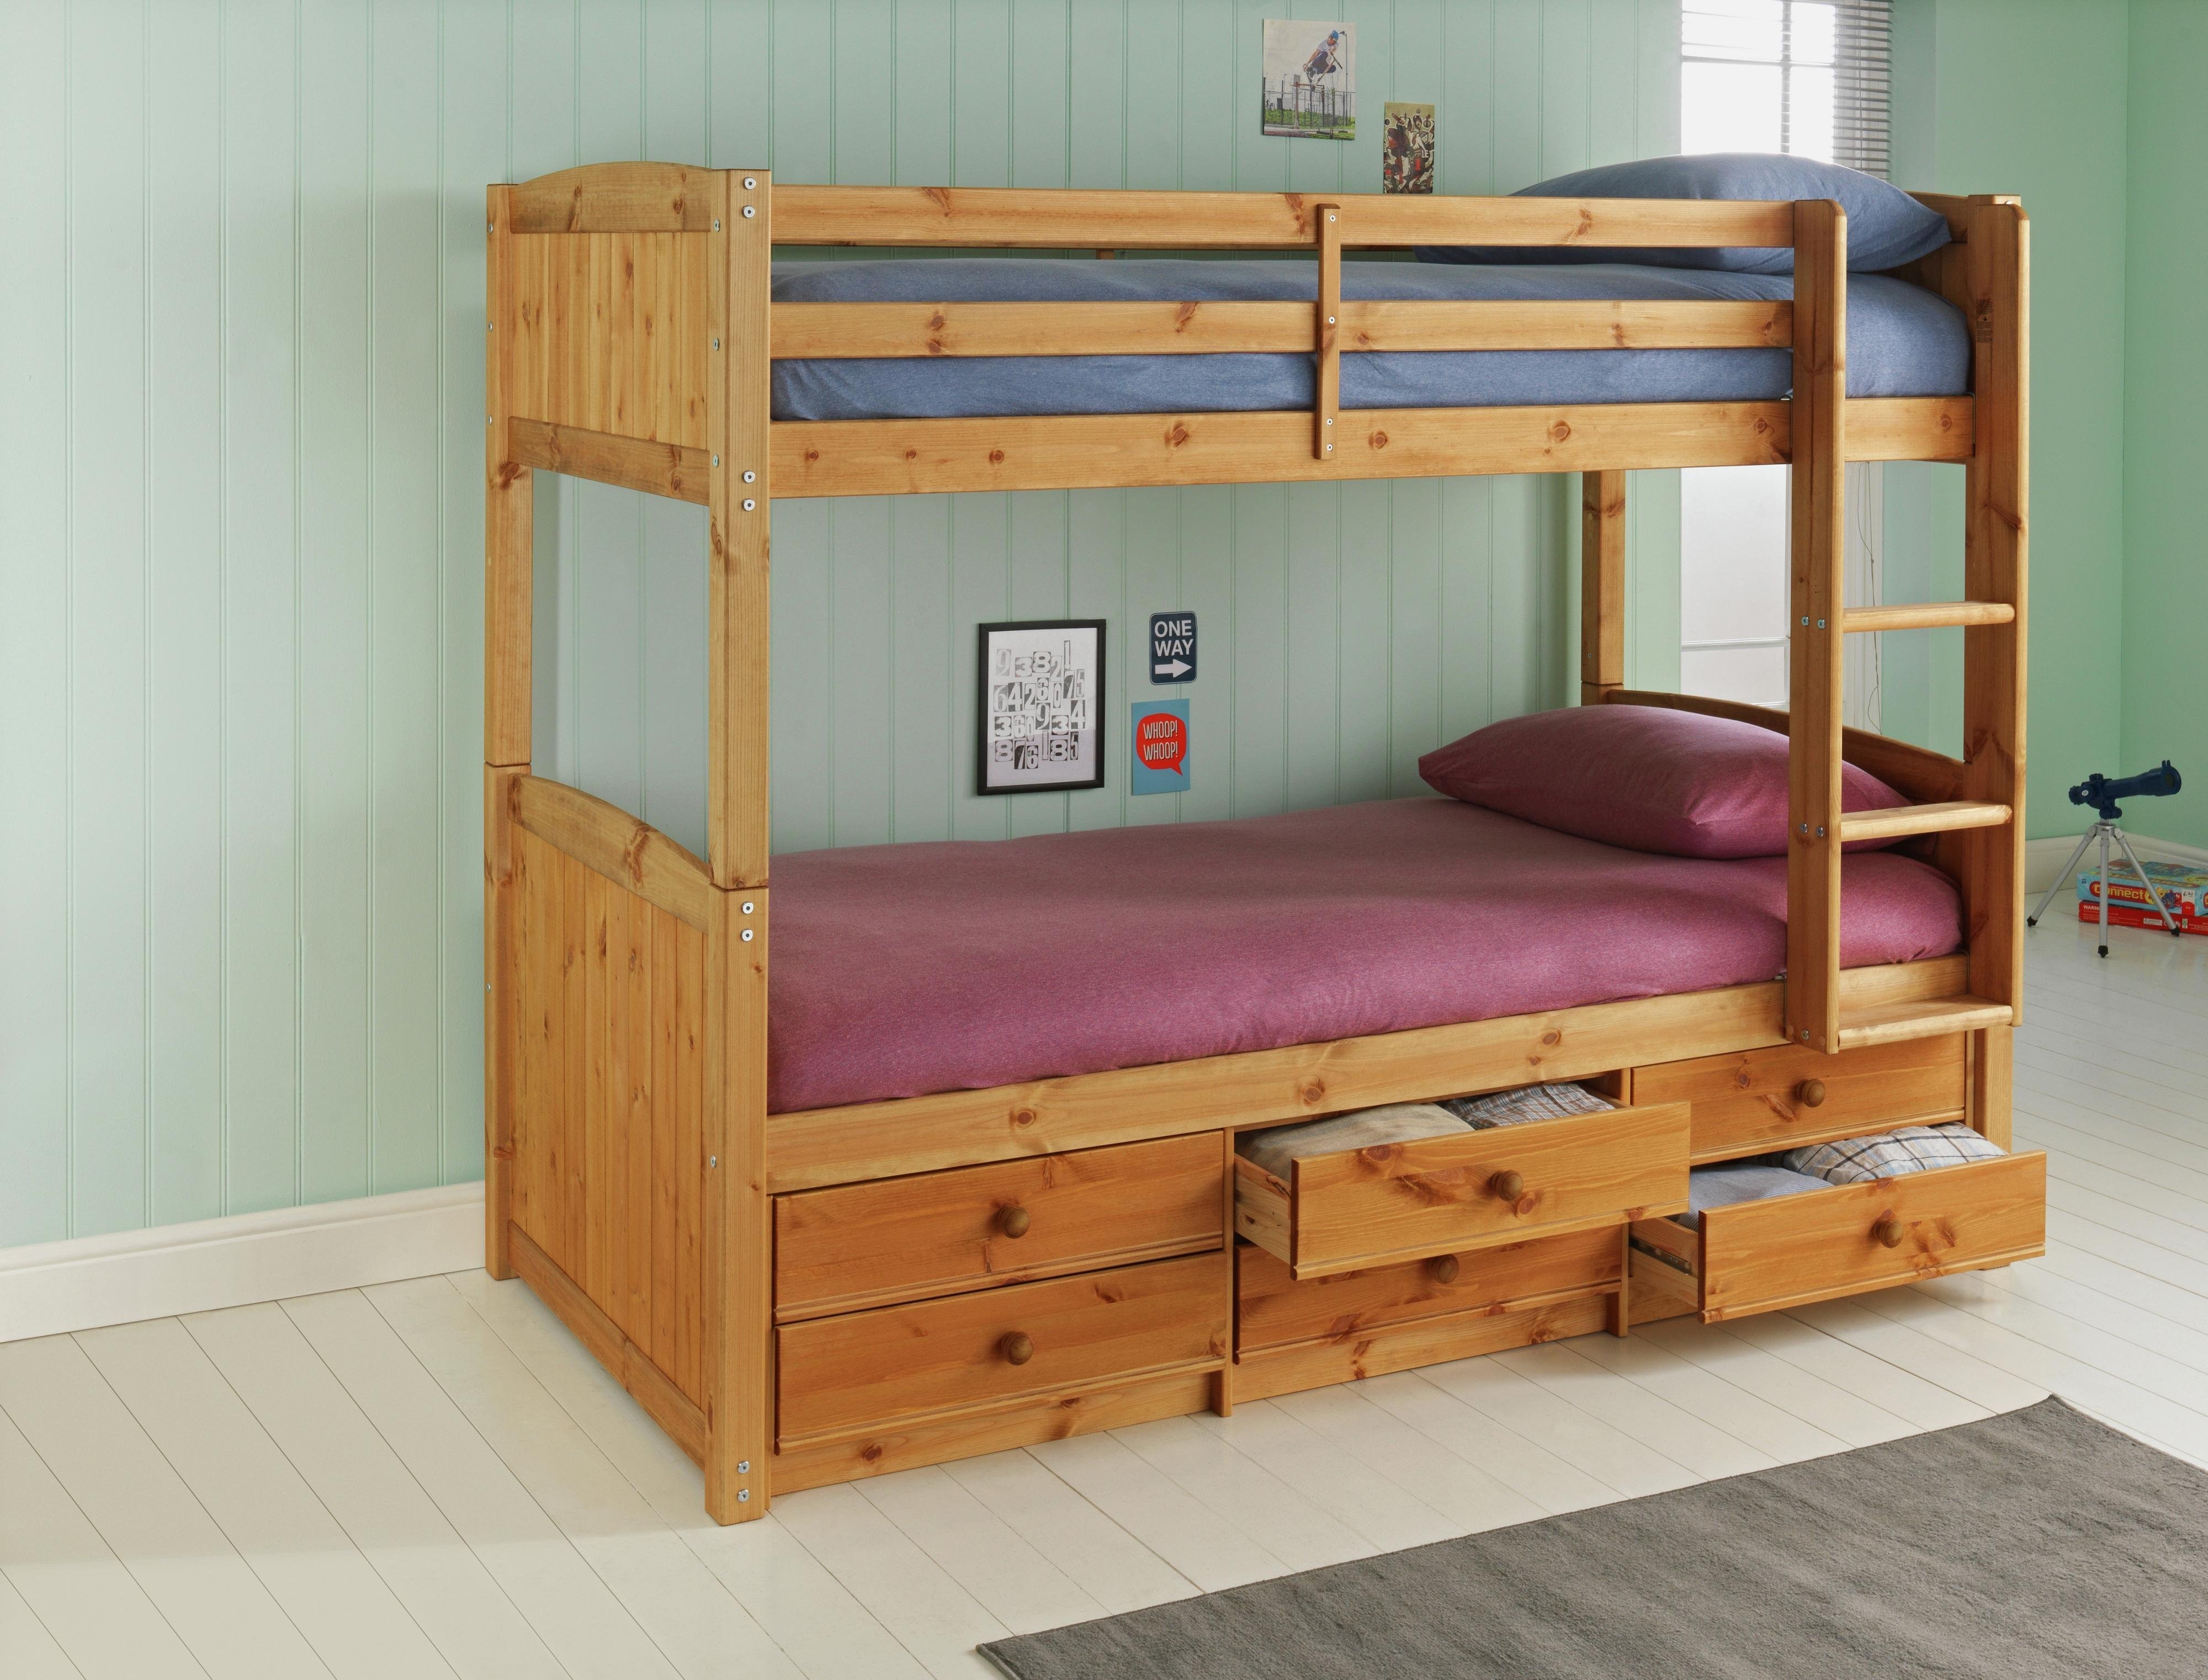 Image of Leigh Detachable - Single Bunk Bed Frame - Pine